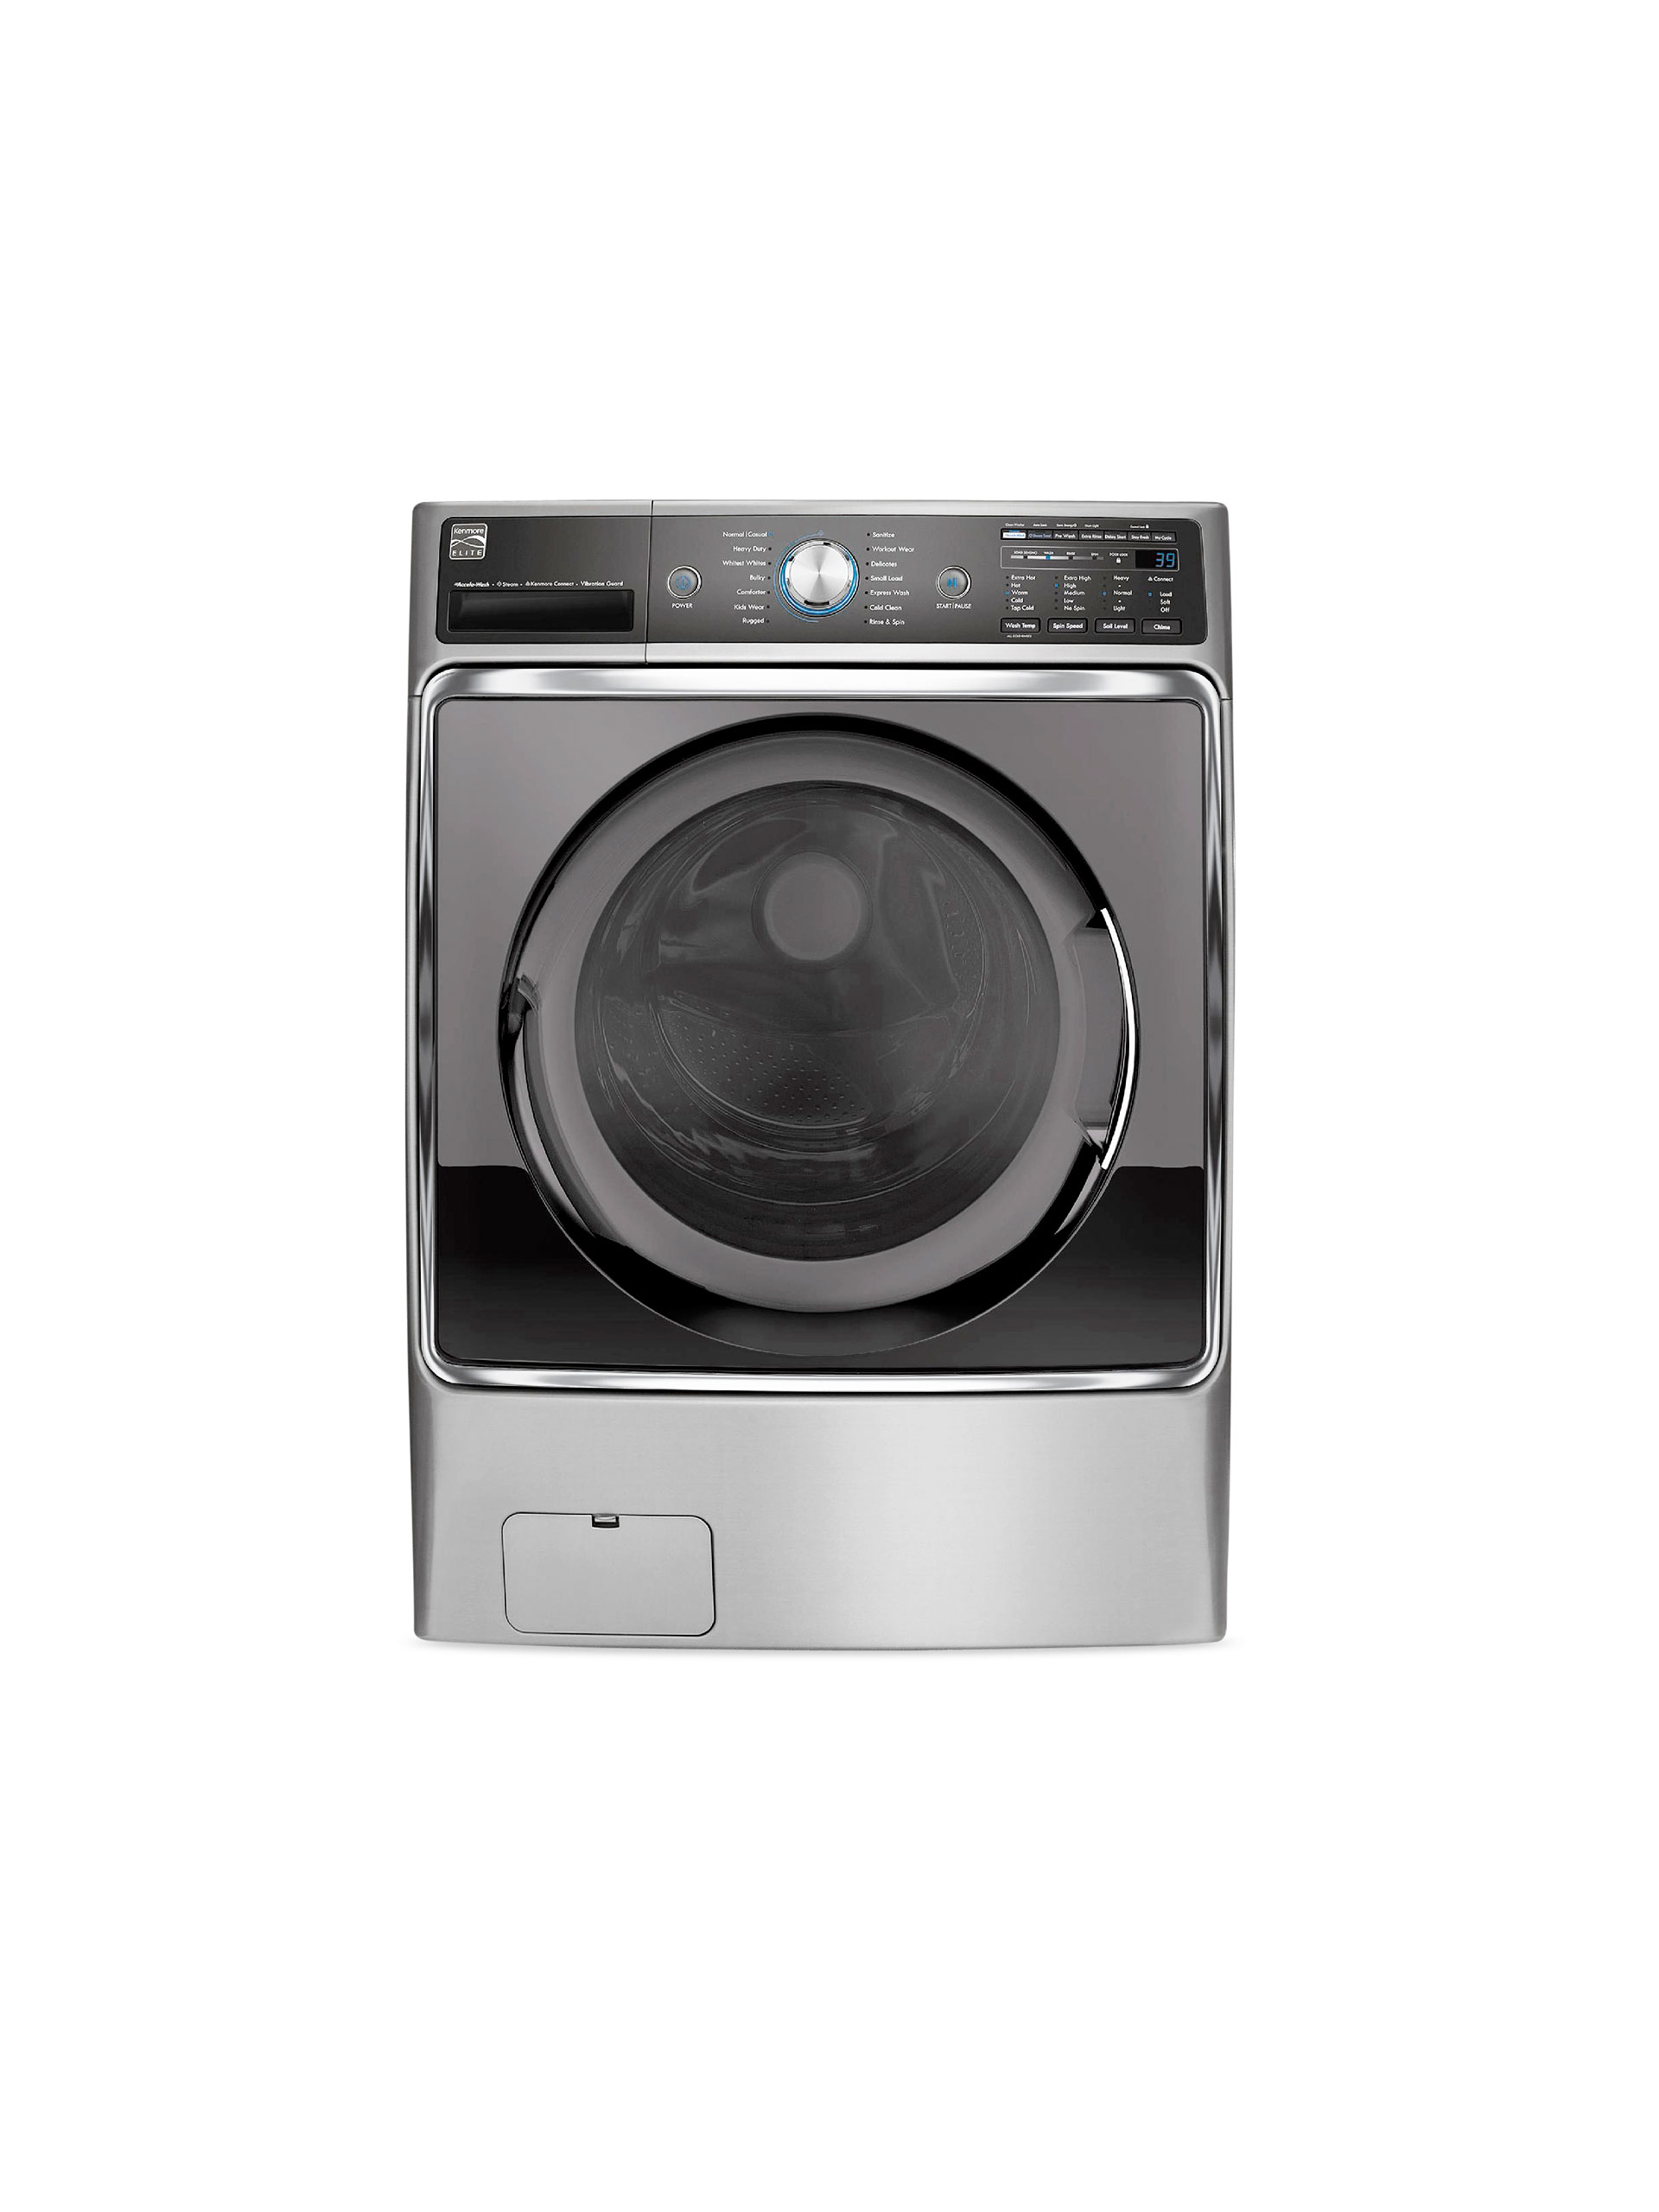 The best top load washer on the market - The Best Top Load Washer On The Market 31